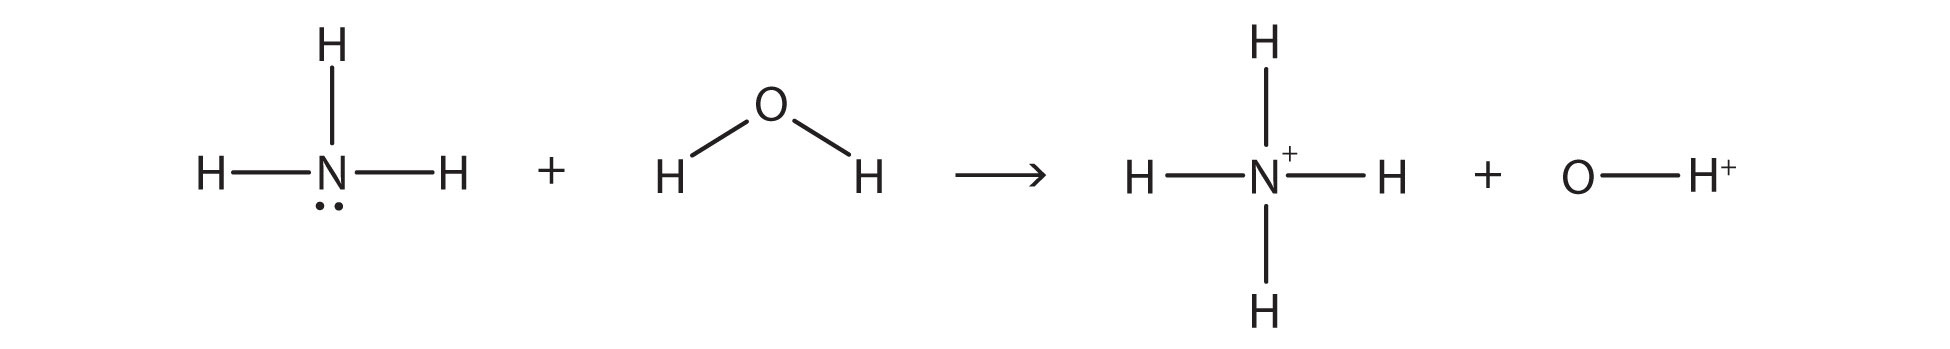 This image is a Reaction between ammonia and water.